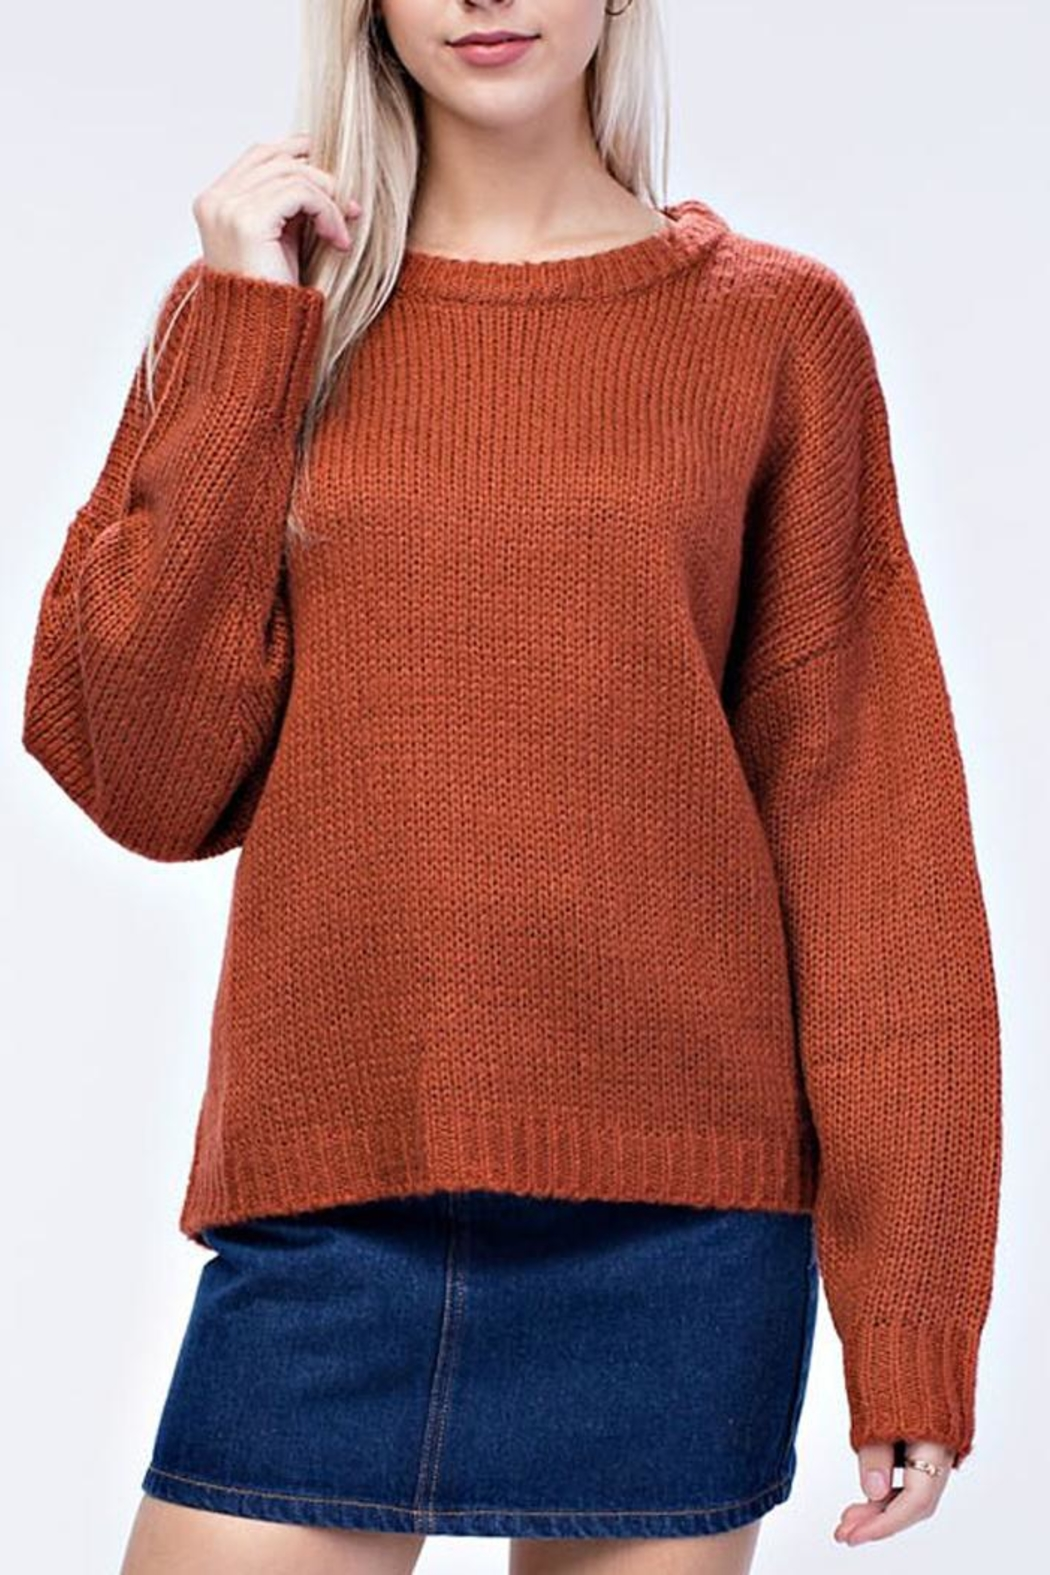 4f724f3b4102 Honey Punch Warm-At-Home Sweater from Orange County by Maple ...